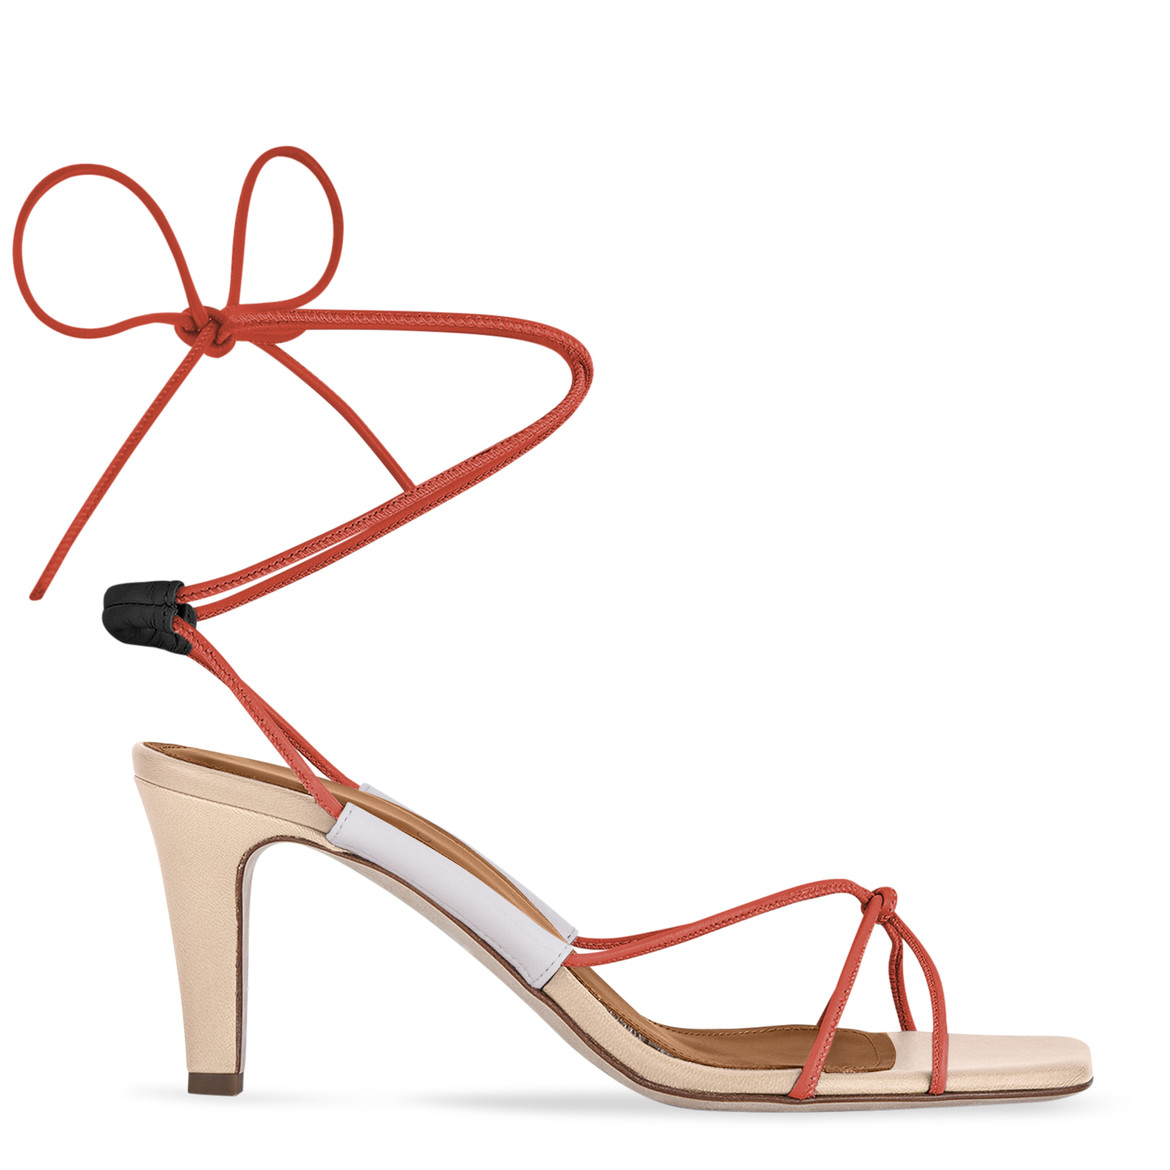 Malone Souliers Camila HKD4,800 from Lane Crawford